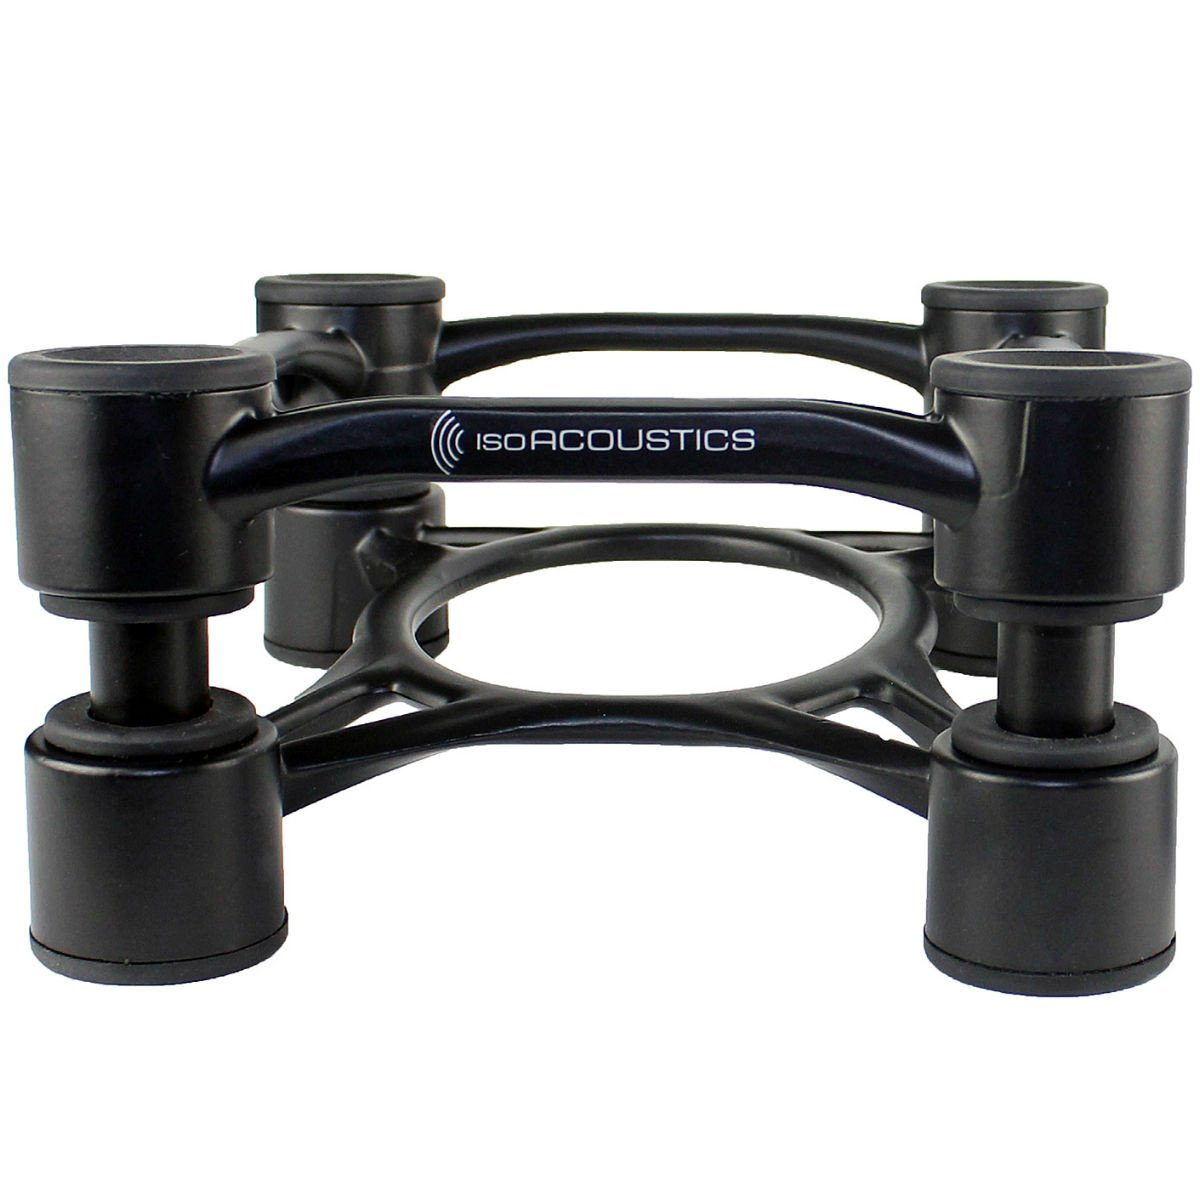 Studio Monitor Stands - IsoAcoustics Aperta 200 Sculpted Aluminum Acoustic Isolation Stands (PAIR)